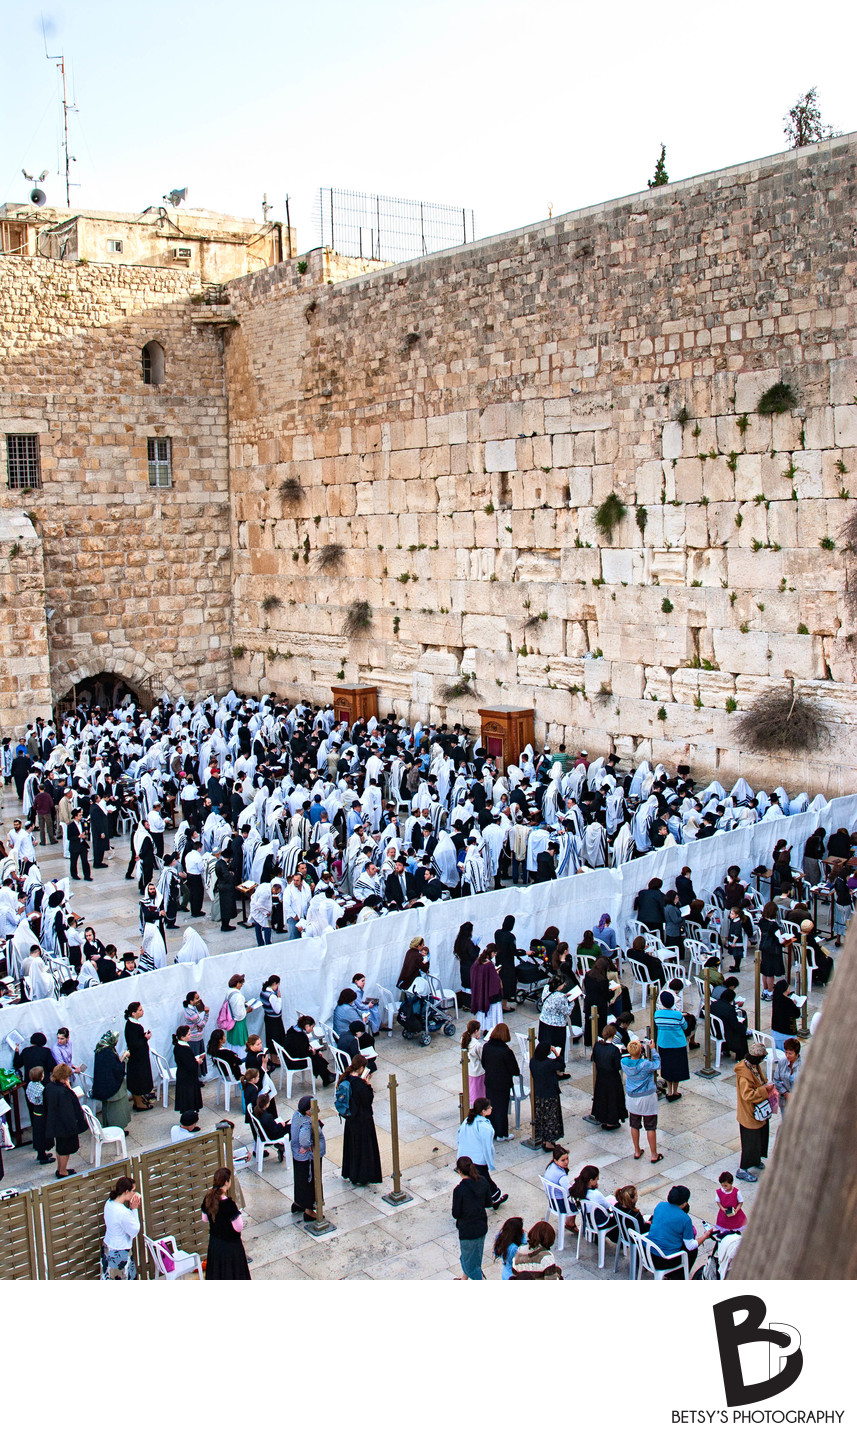 The Western Wall during Holy Week